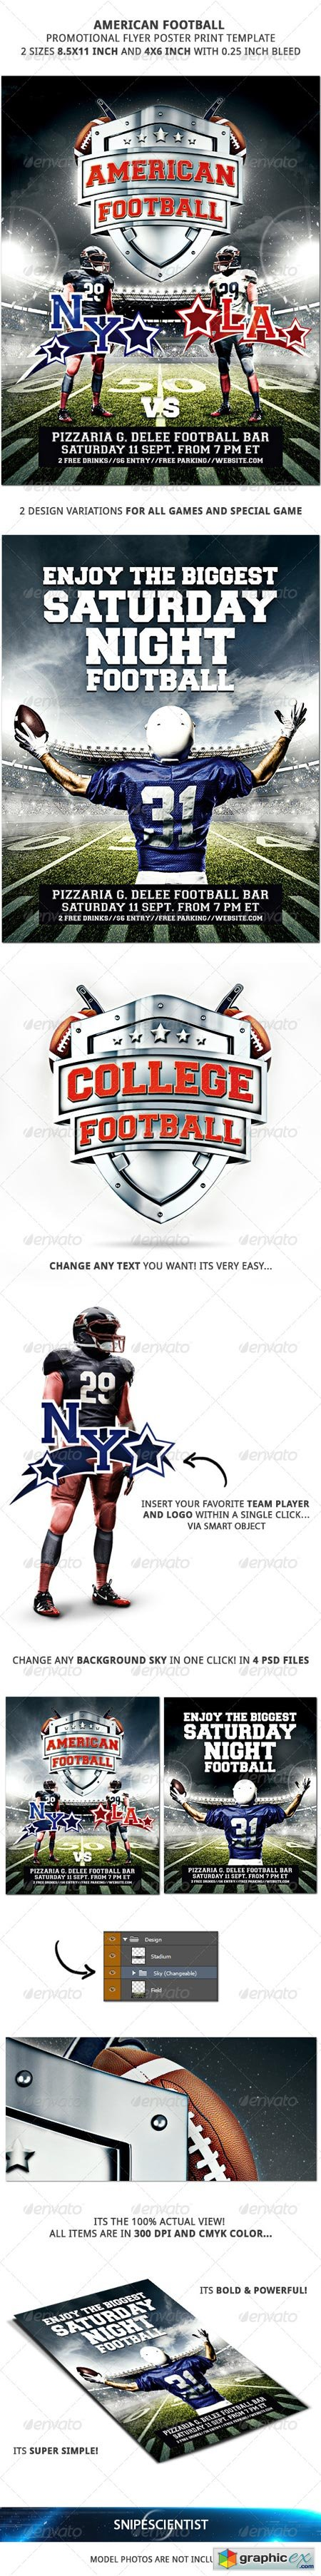 American Football Promotional Flyer Poster 2 Sizes 8603931